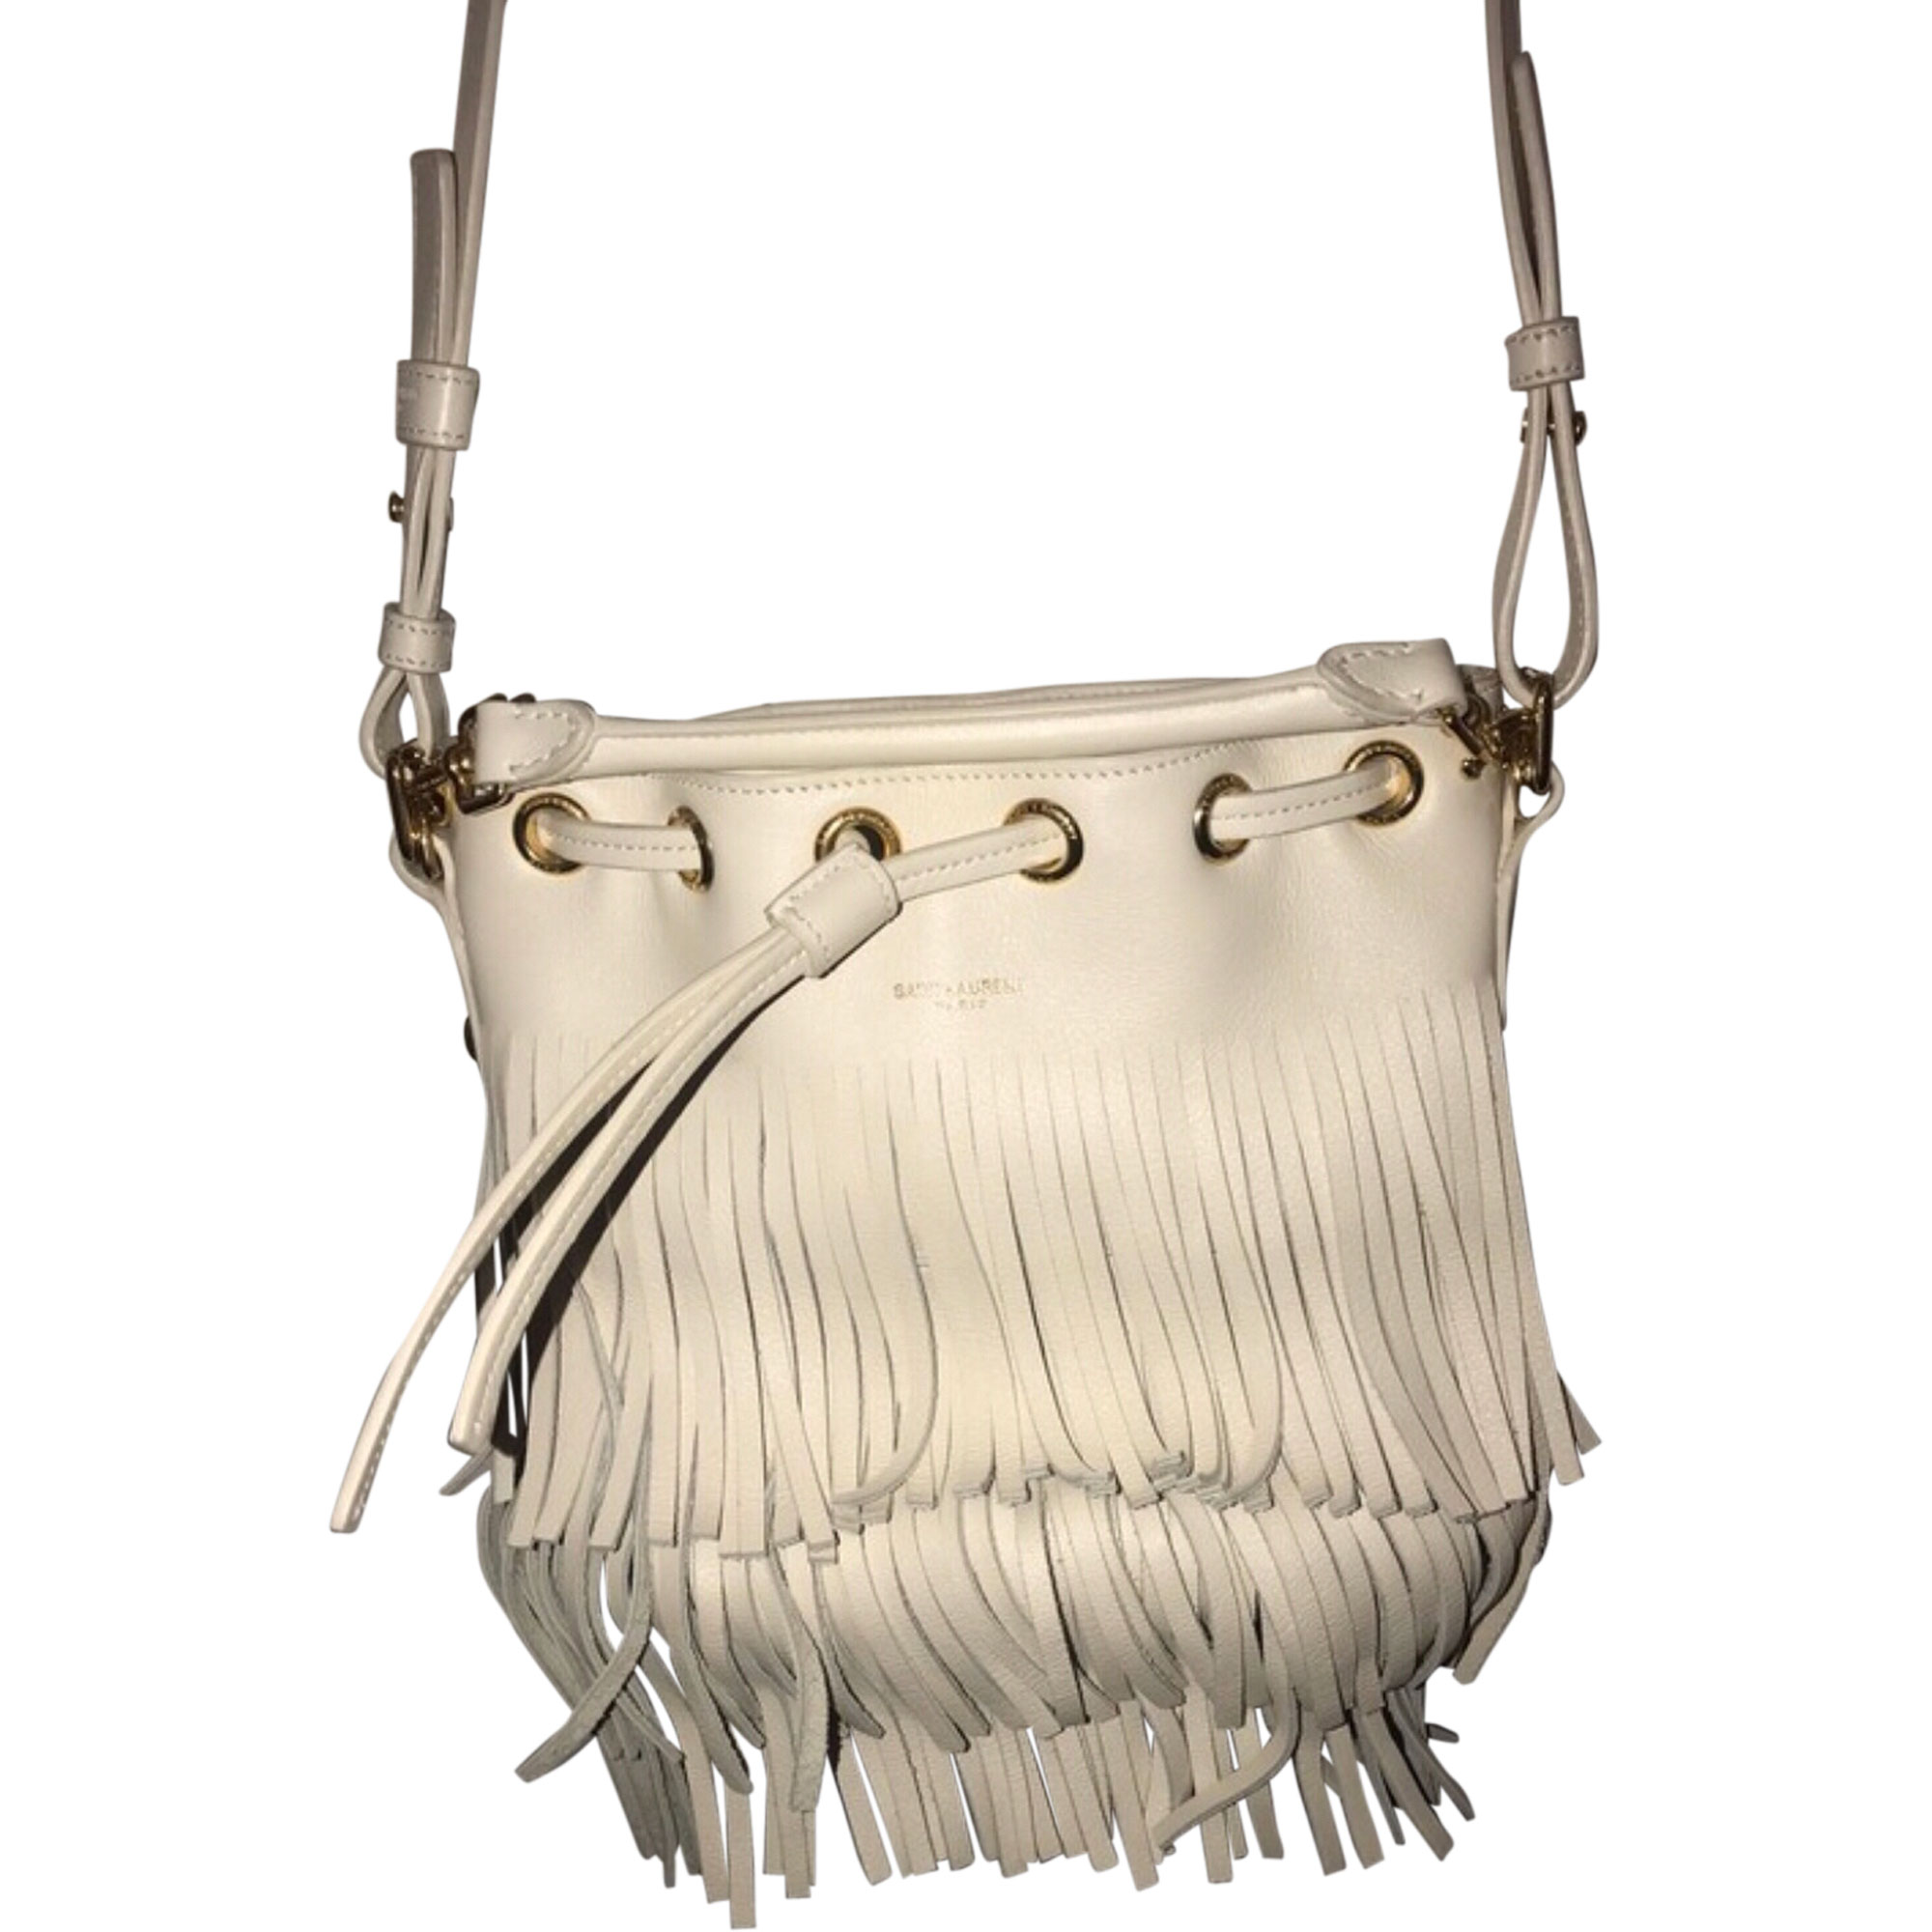 Leather Shoulder Bag SAINT LAURENT White, off-white, ecru